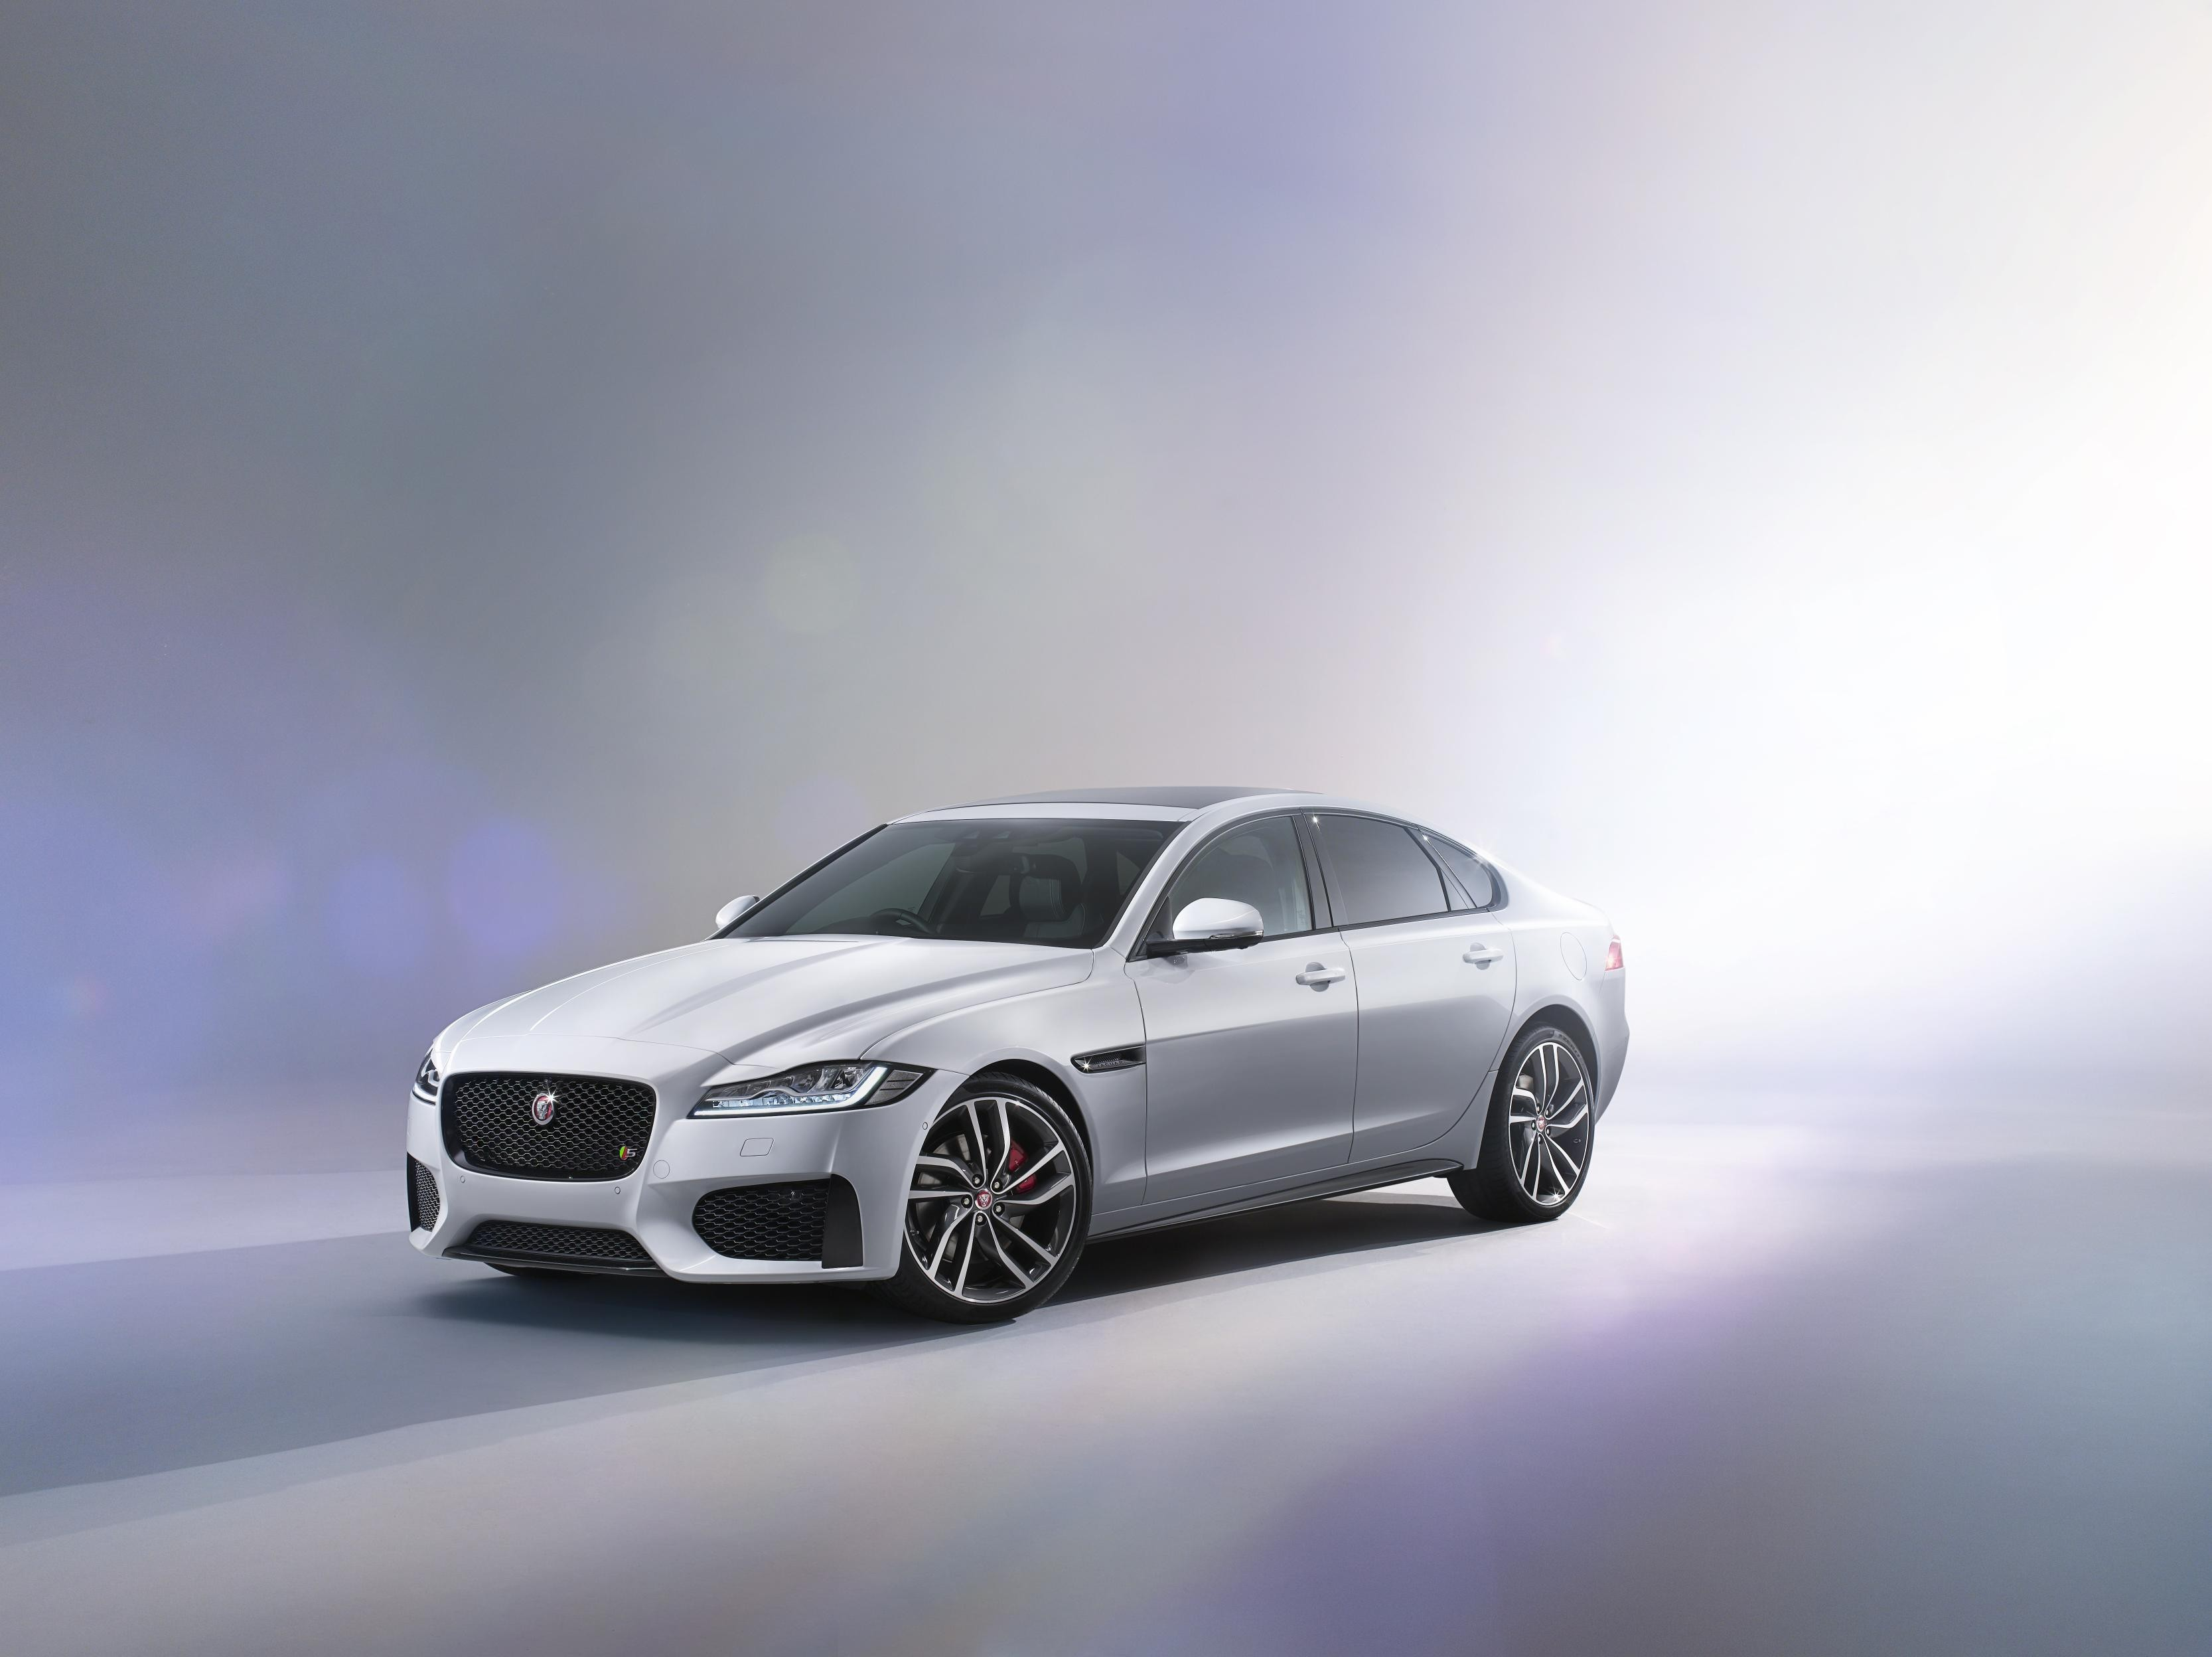 2015 jaguar xf officially unveiled video photo gallery. Black Bedroom Furniture Sets. Home Design Ideas